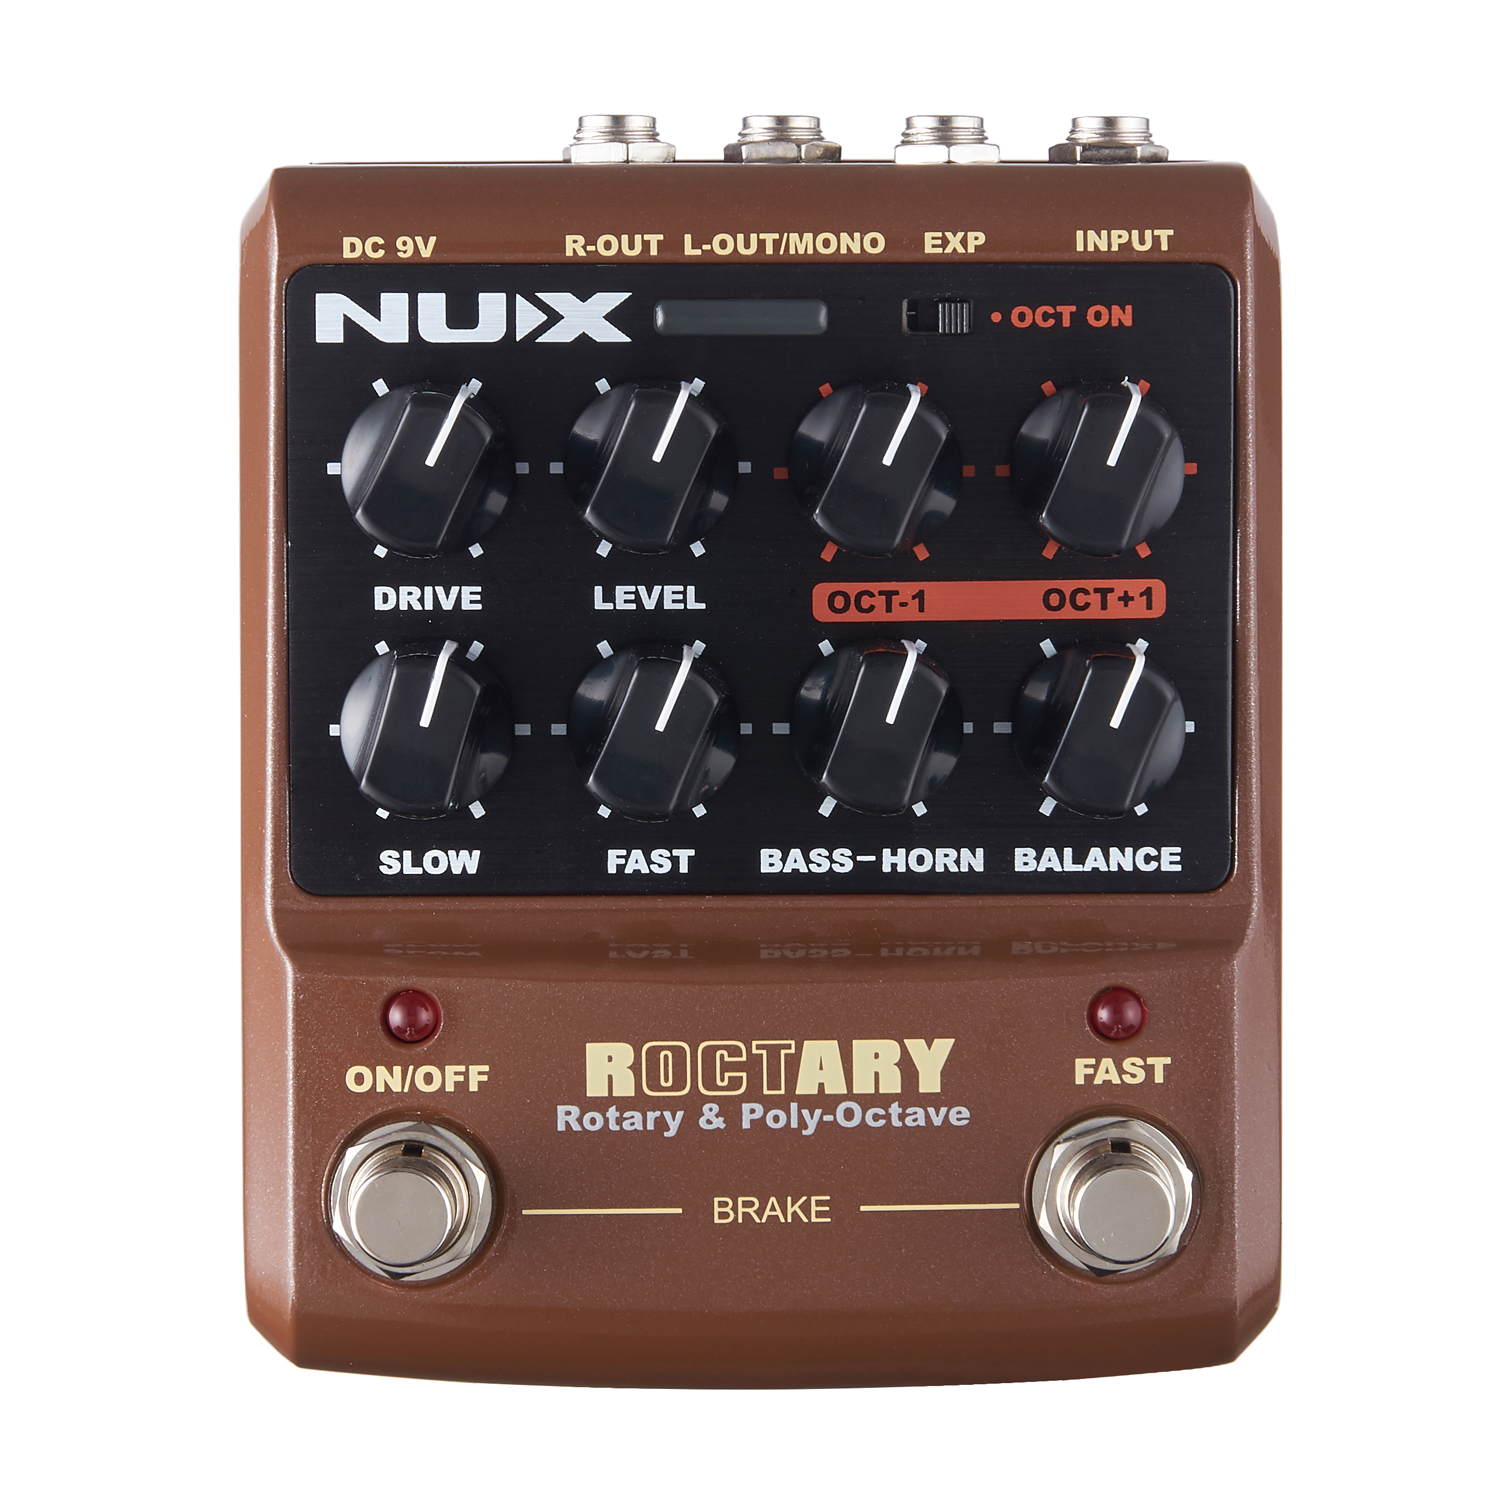 NUX Roctary Force Octave Rotary Guitar Effect Pedal Cabin Simulator TSAC Technology L/Mono and R Output Built-In Overdrive nux roctary force simulator polyphonic octave stomp boxes electric guitar effect pedal fet buttered tsac true bypass